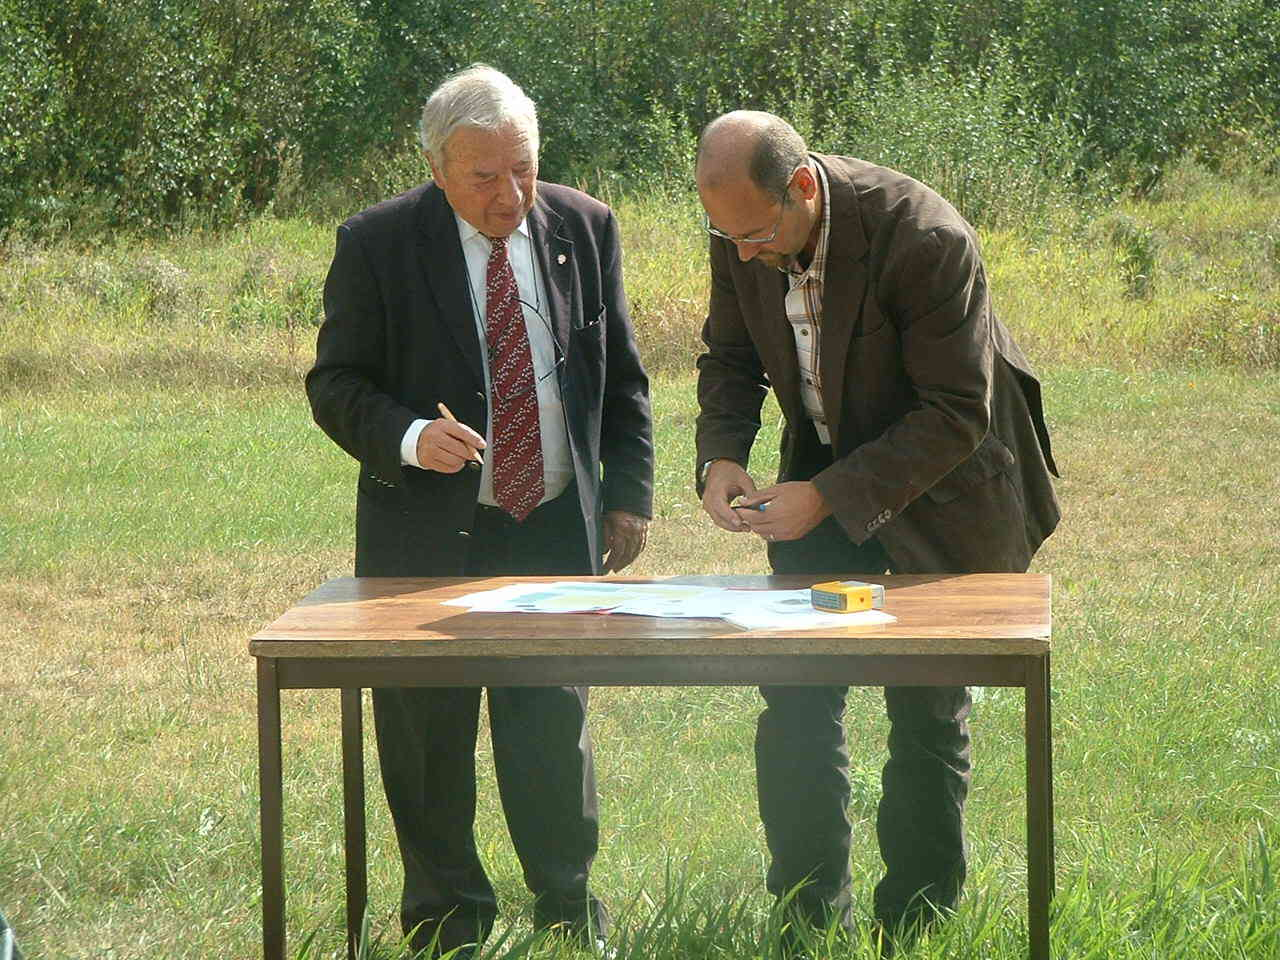 inauguration chemin nature sp pierre cour 18 sept 09-comp4